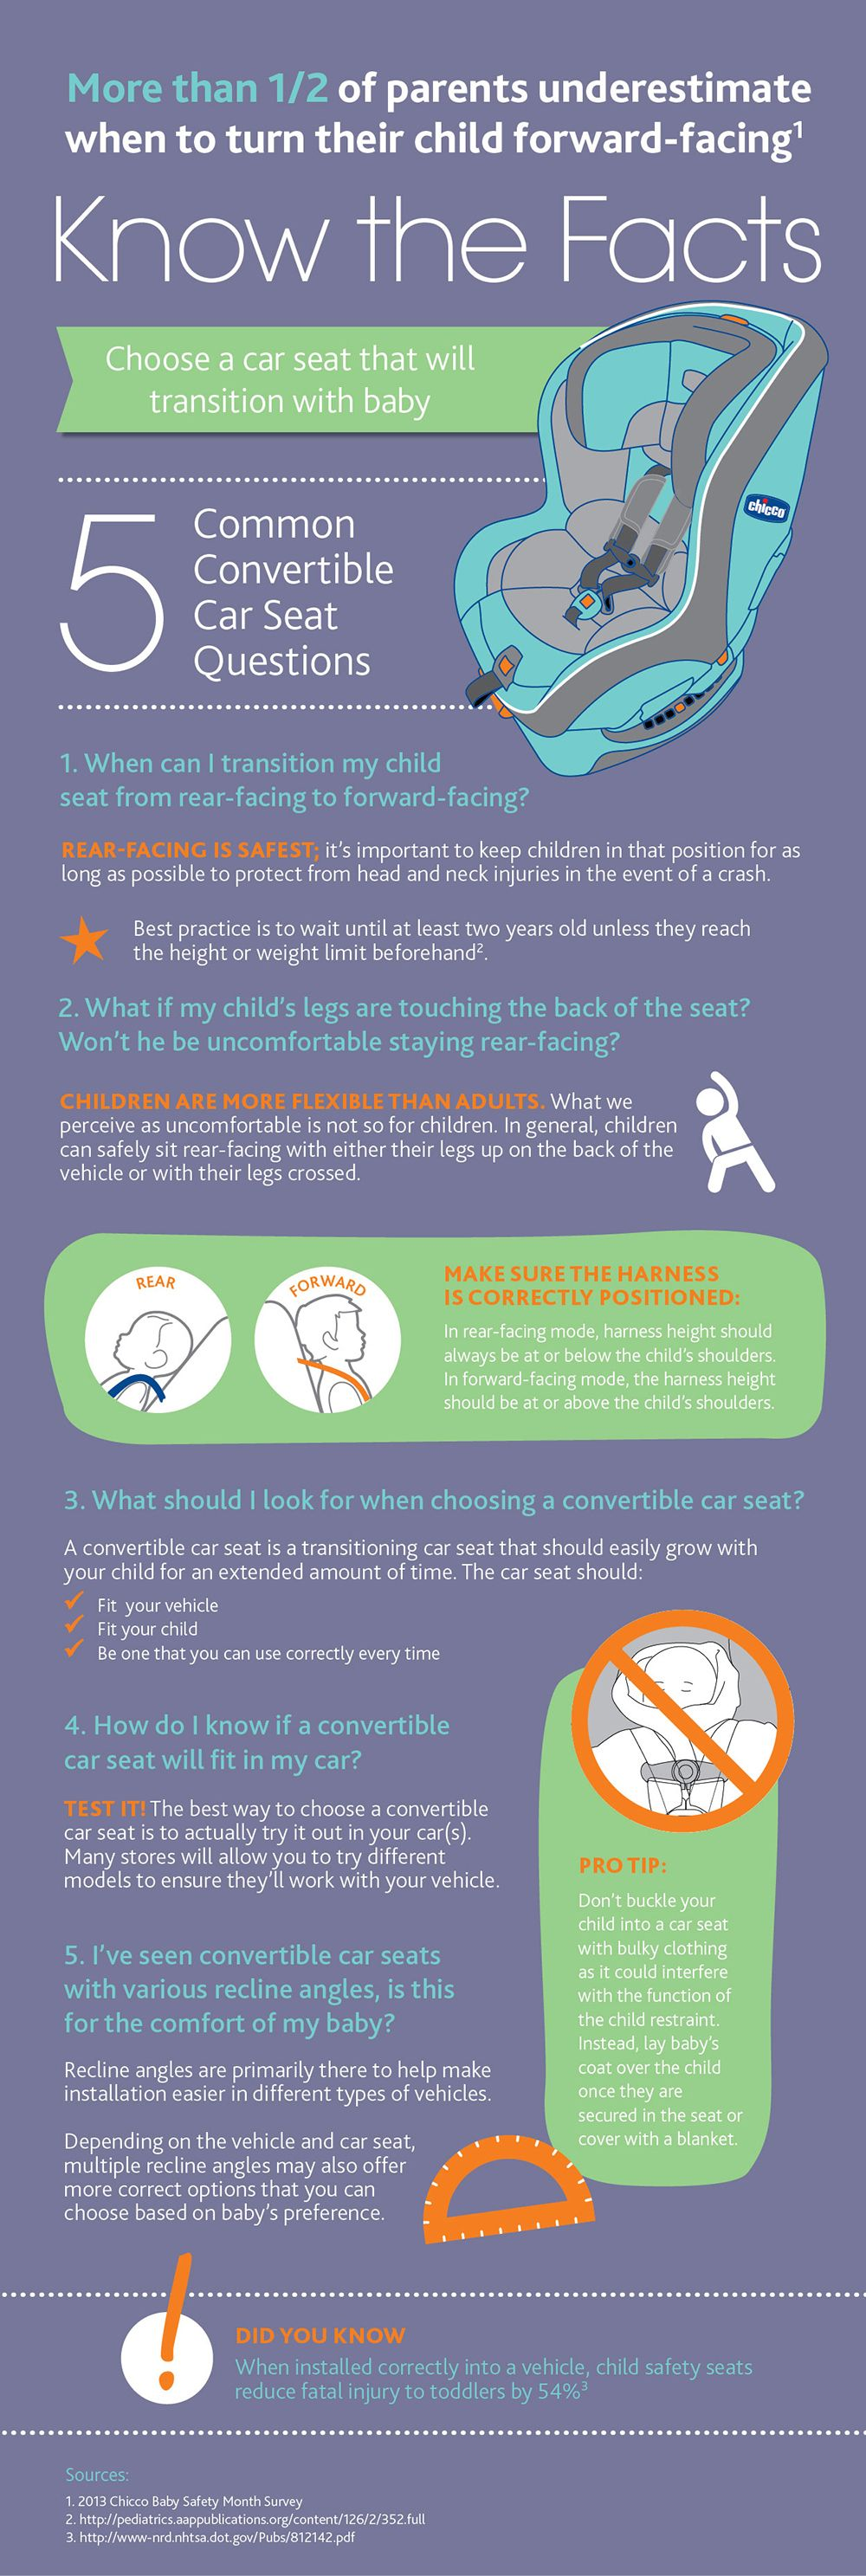 Convertible Car Seat Safety Infographic Car Seat Safety Infographic Convertible Car Seat Safety Convertible Car Seat